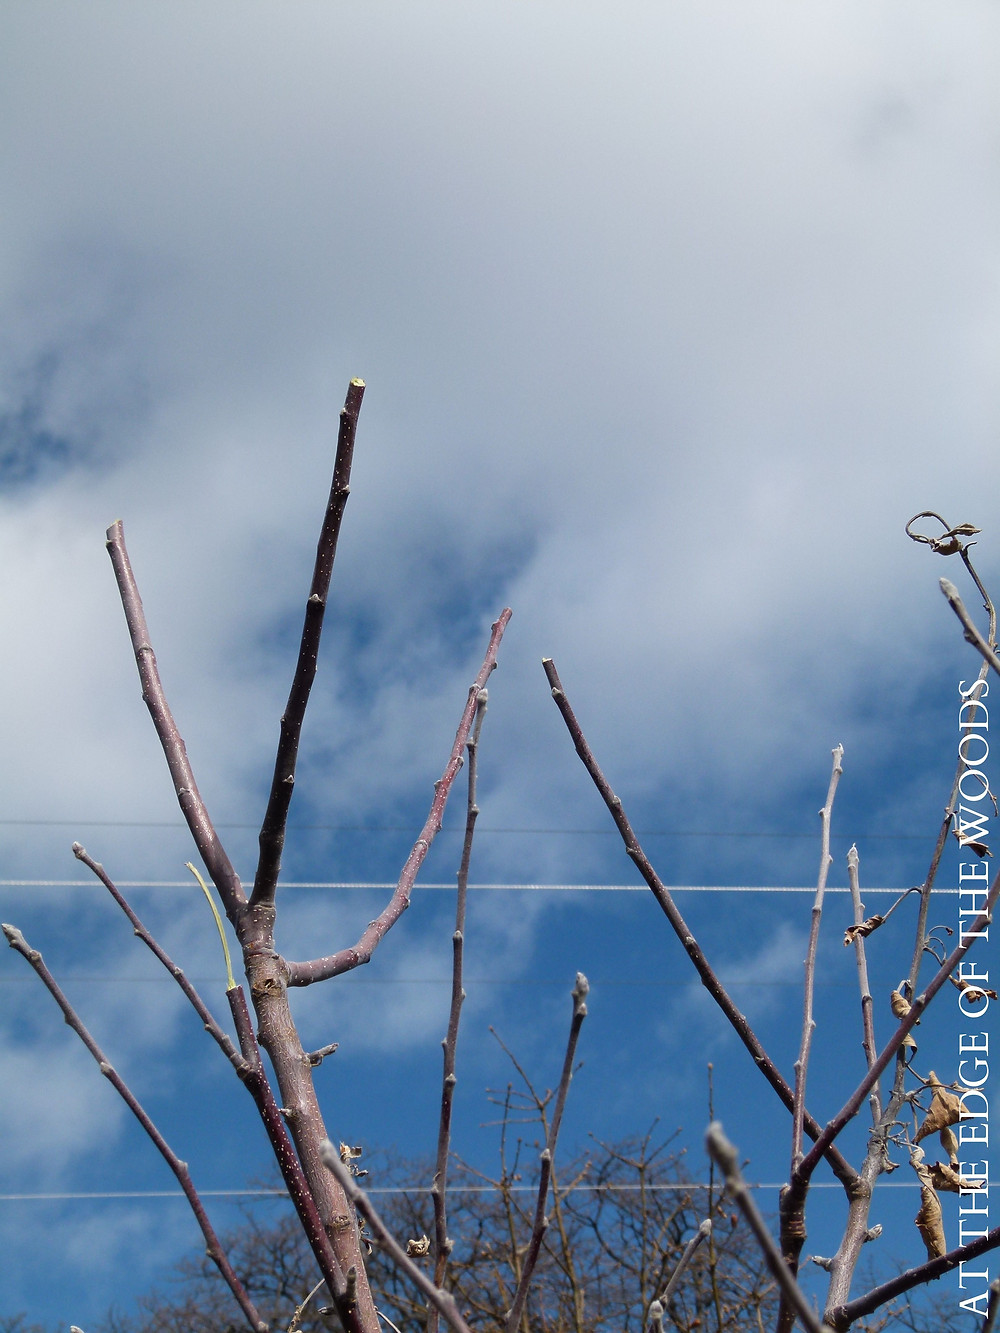 pruning cuts on the top branches of an apricot tree